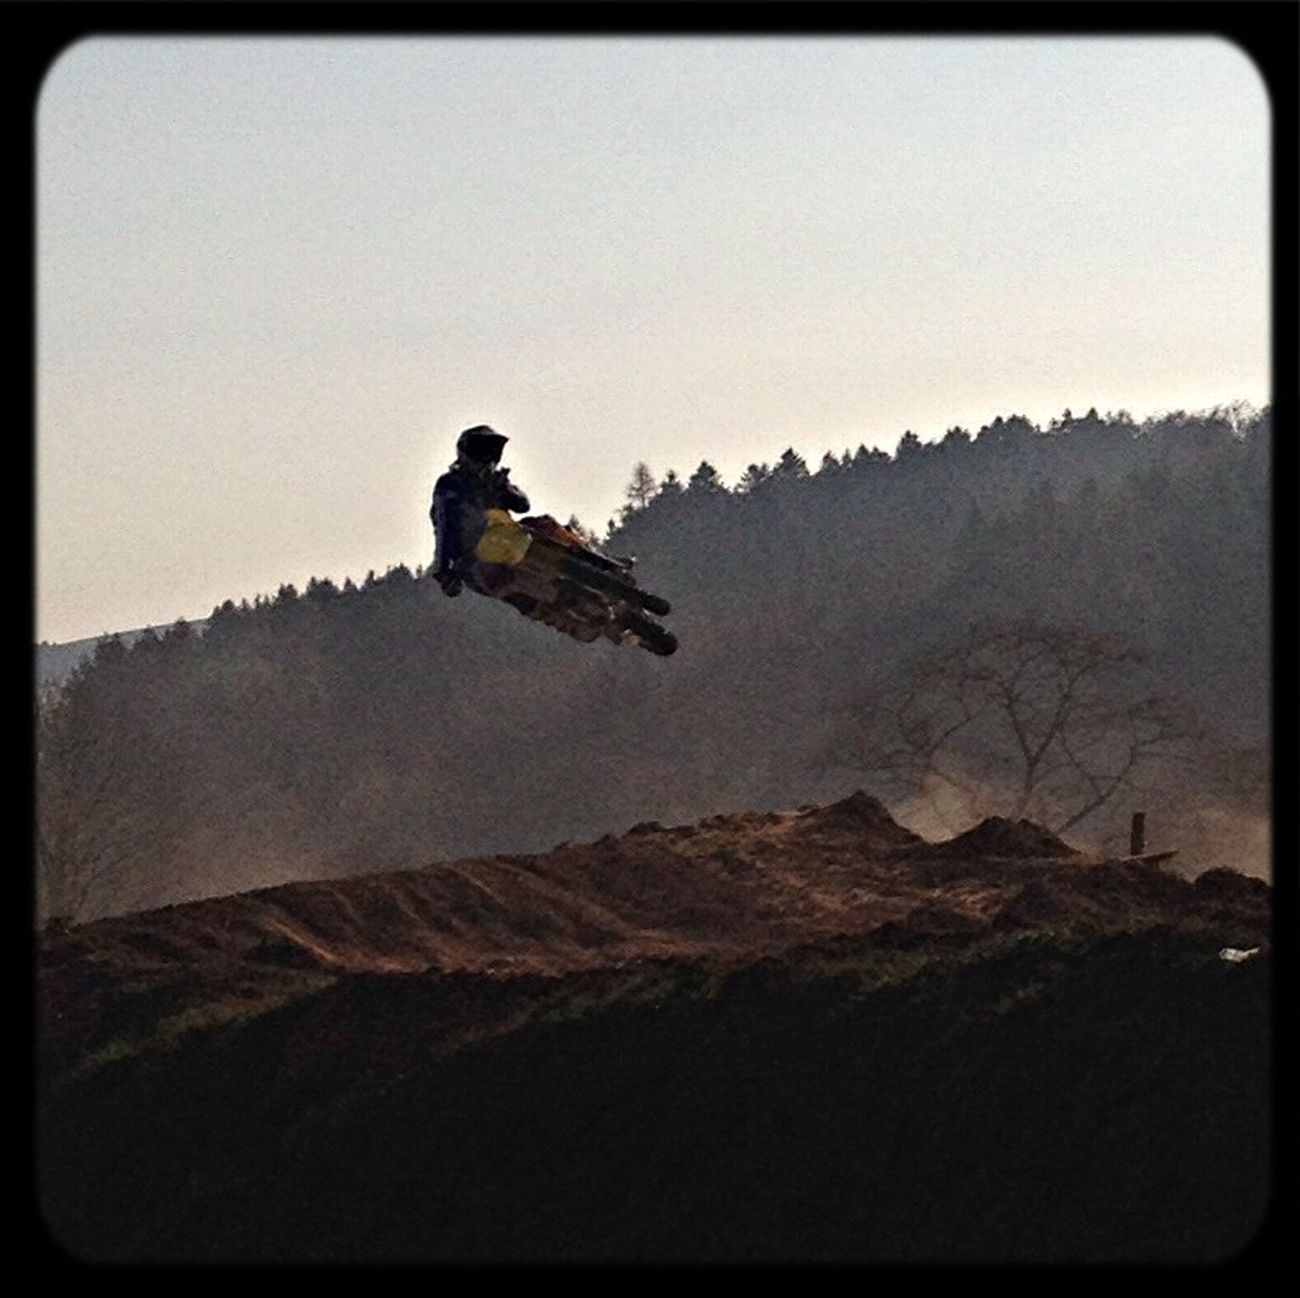 Whip it...? Motocross